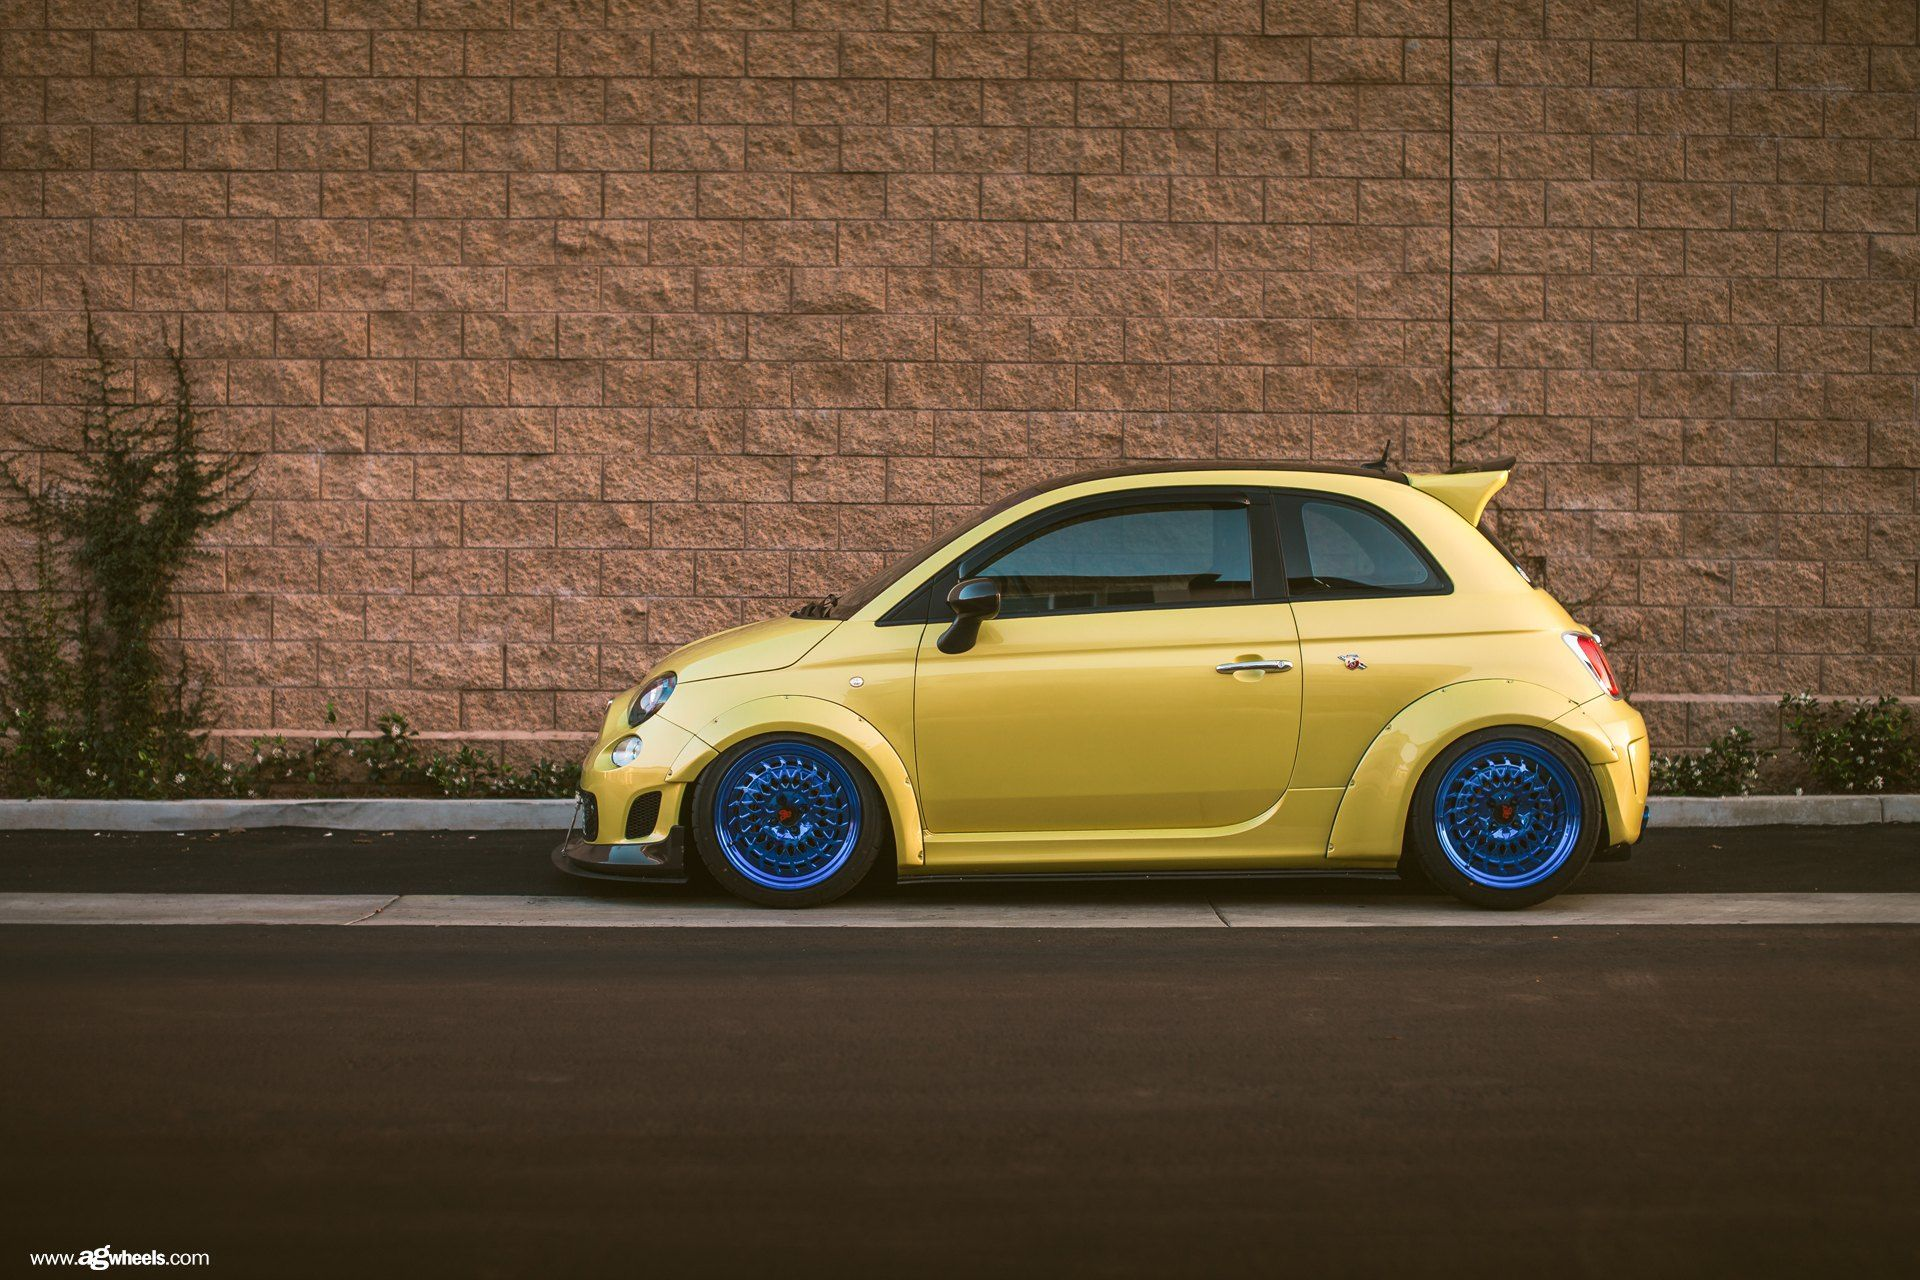 Yellow Fiat 500 Abarth Gets Distinctive Look With Blue Avant Garde